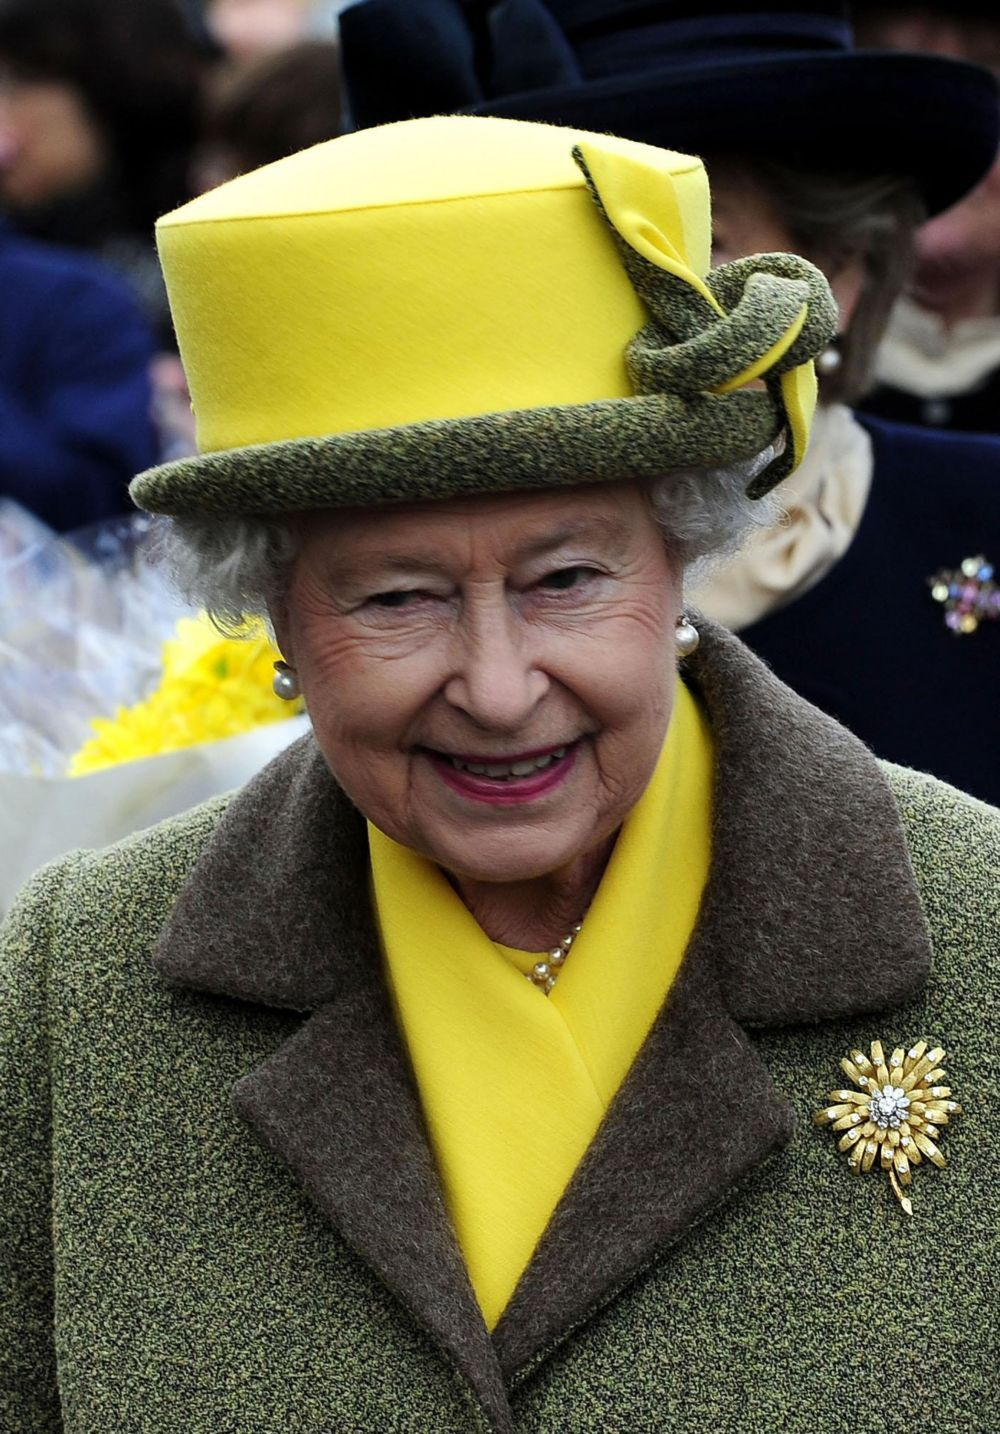 Queen Elizabeth wearing her Frosted Sunflower Brooch.  The hat is lovely...beautiful and fun #queenshats